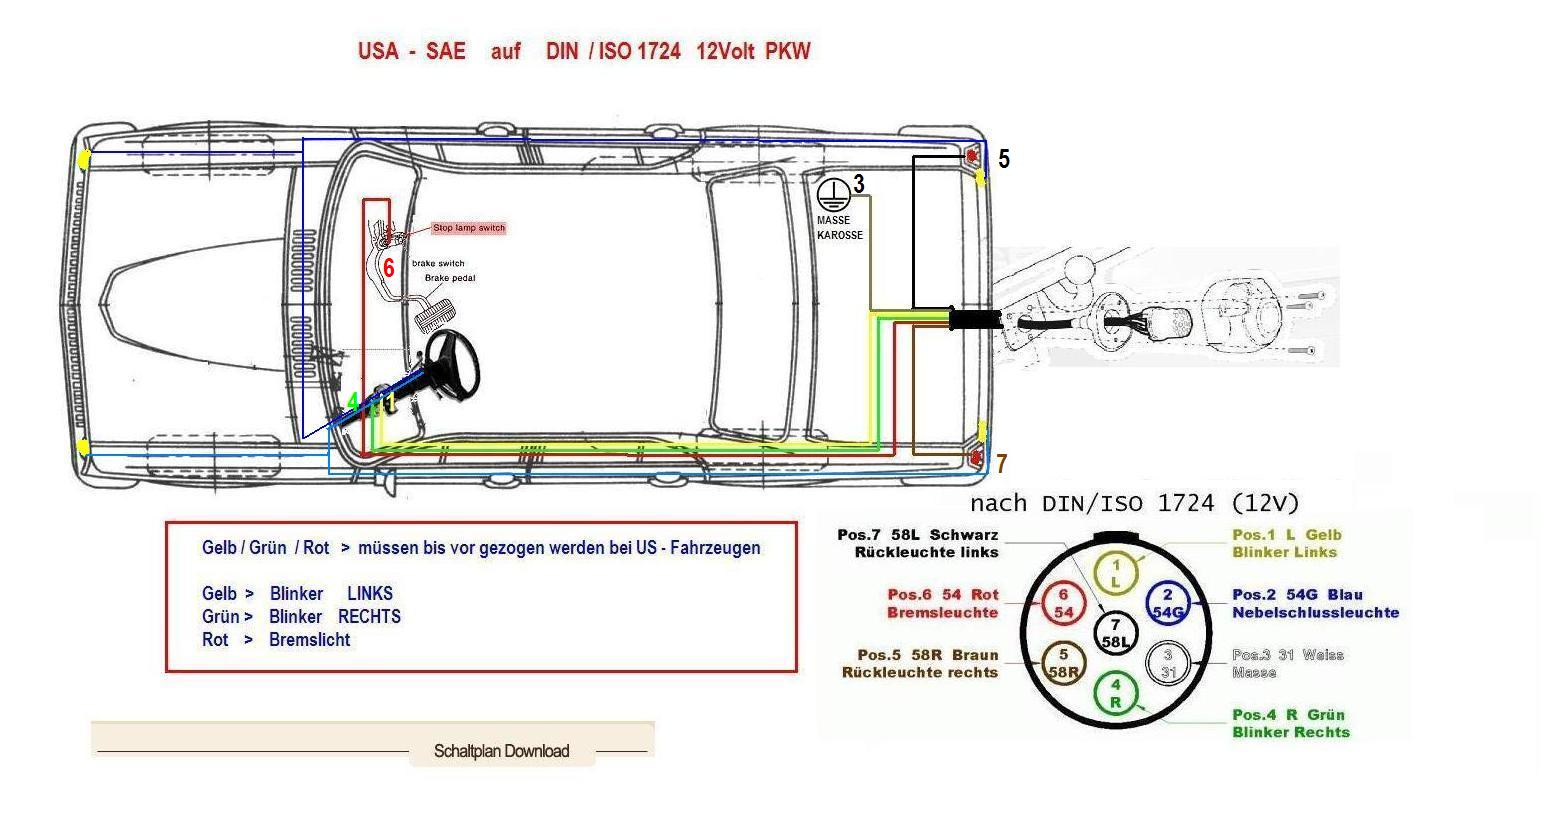 Thema Anzeigen Usa Sae Auf Din Iso 1724 Basic Electrical Wiring Diagrams Http Wwwagcoautocom Content News Fs5directuploadnet Images 160821 Ty7a7chl